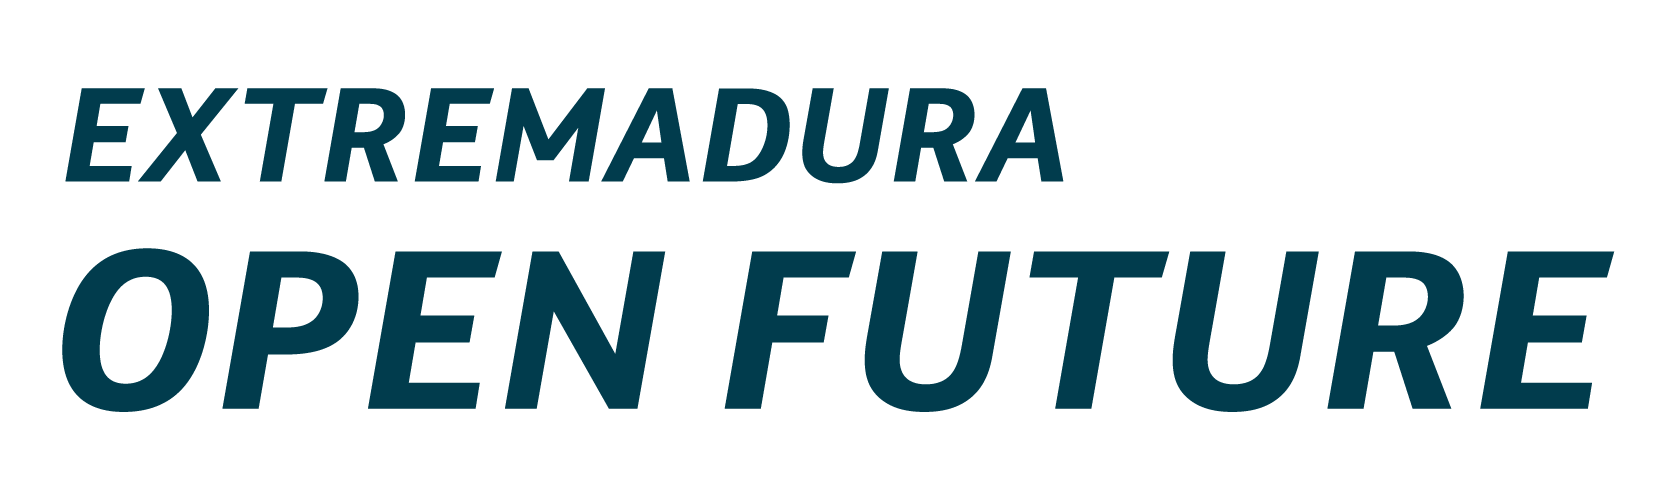 Logotipo de Extremadura Open Future